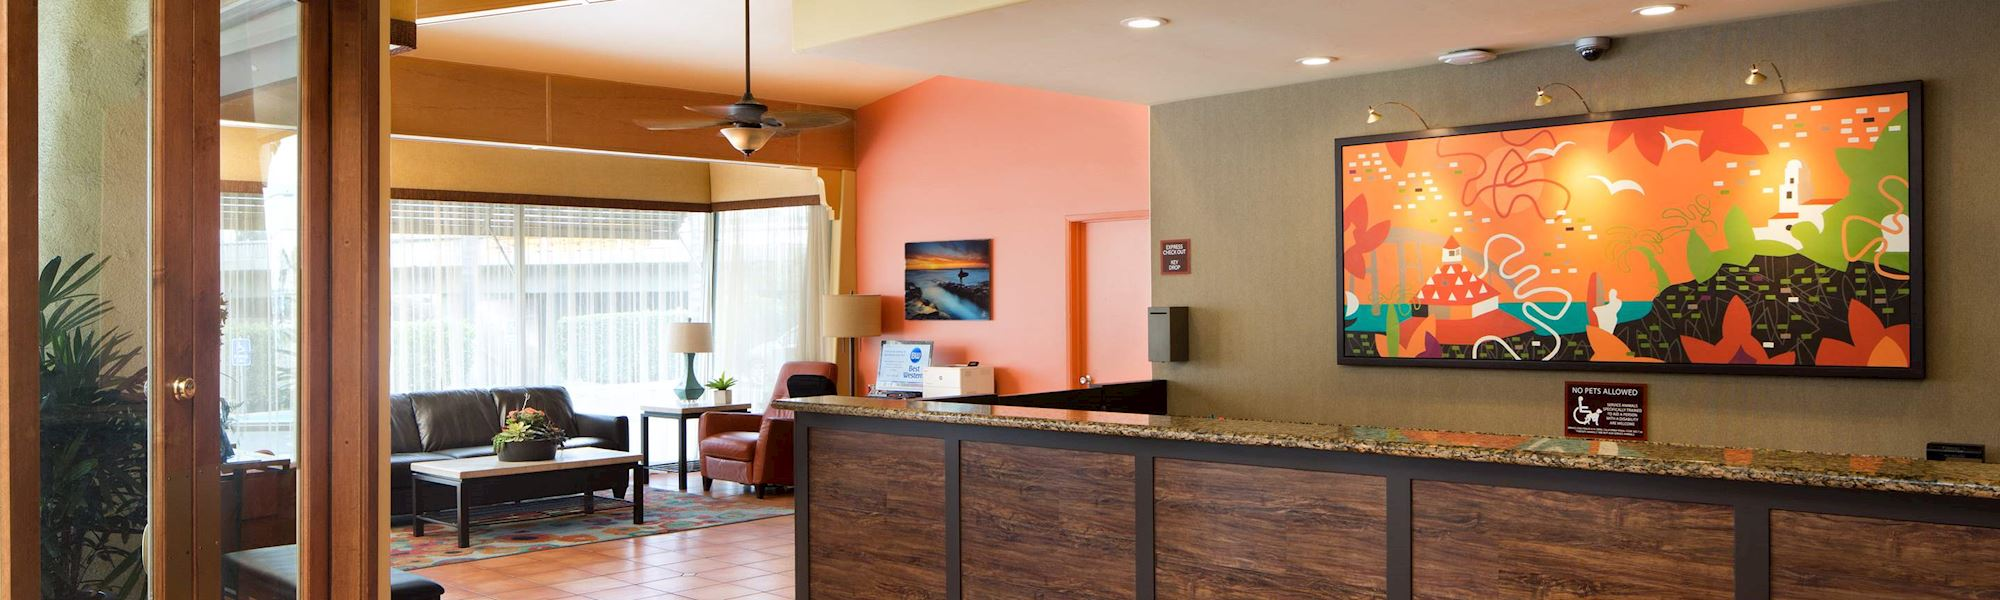 Packages offered in San Diego Hotel